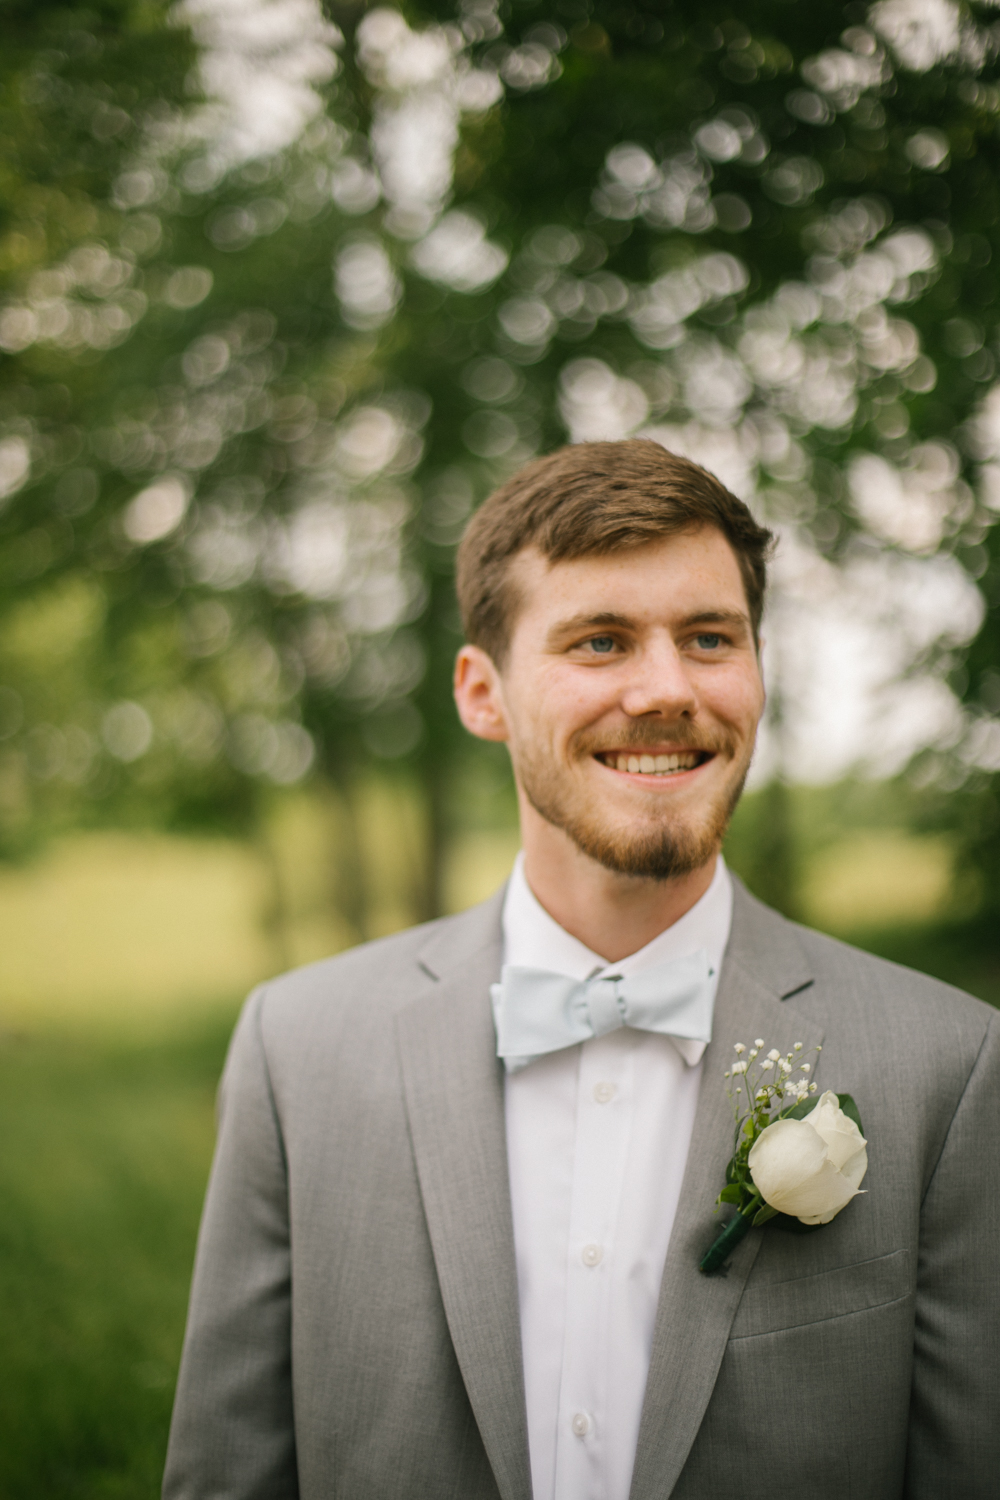 2019.06.01_CraskWedding_Starks-50.jpg